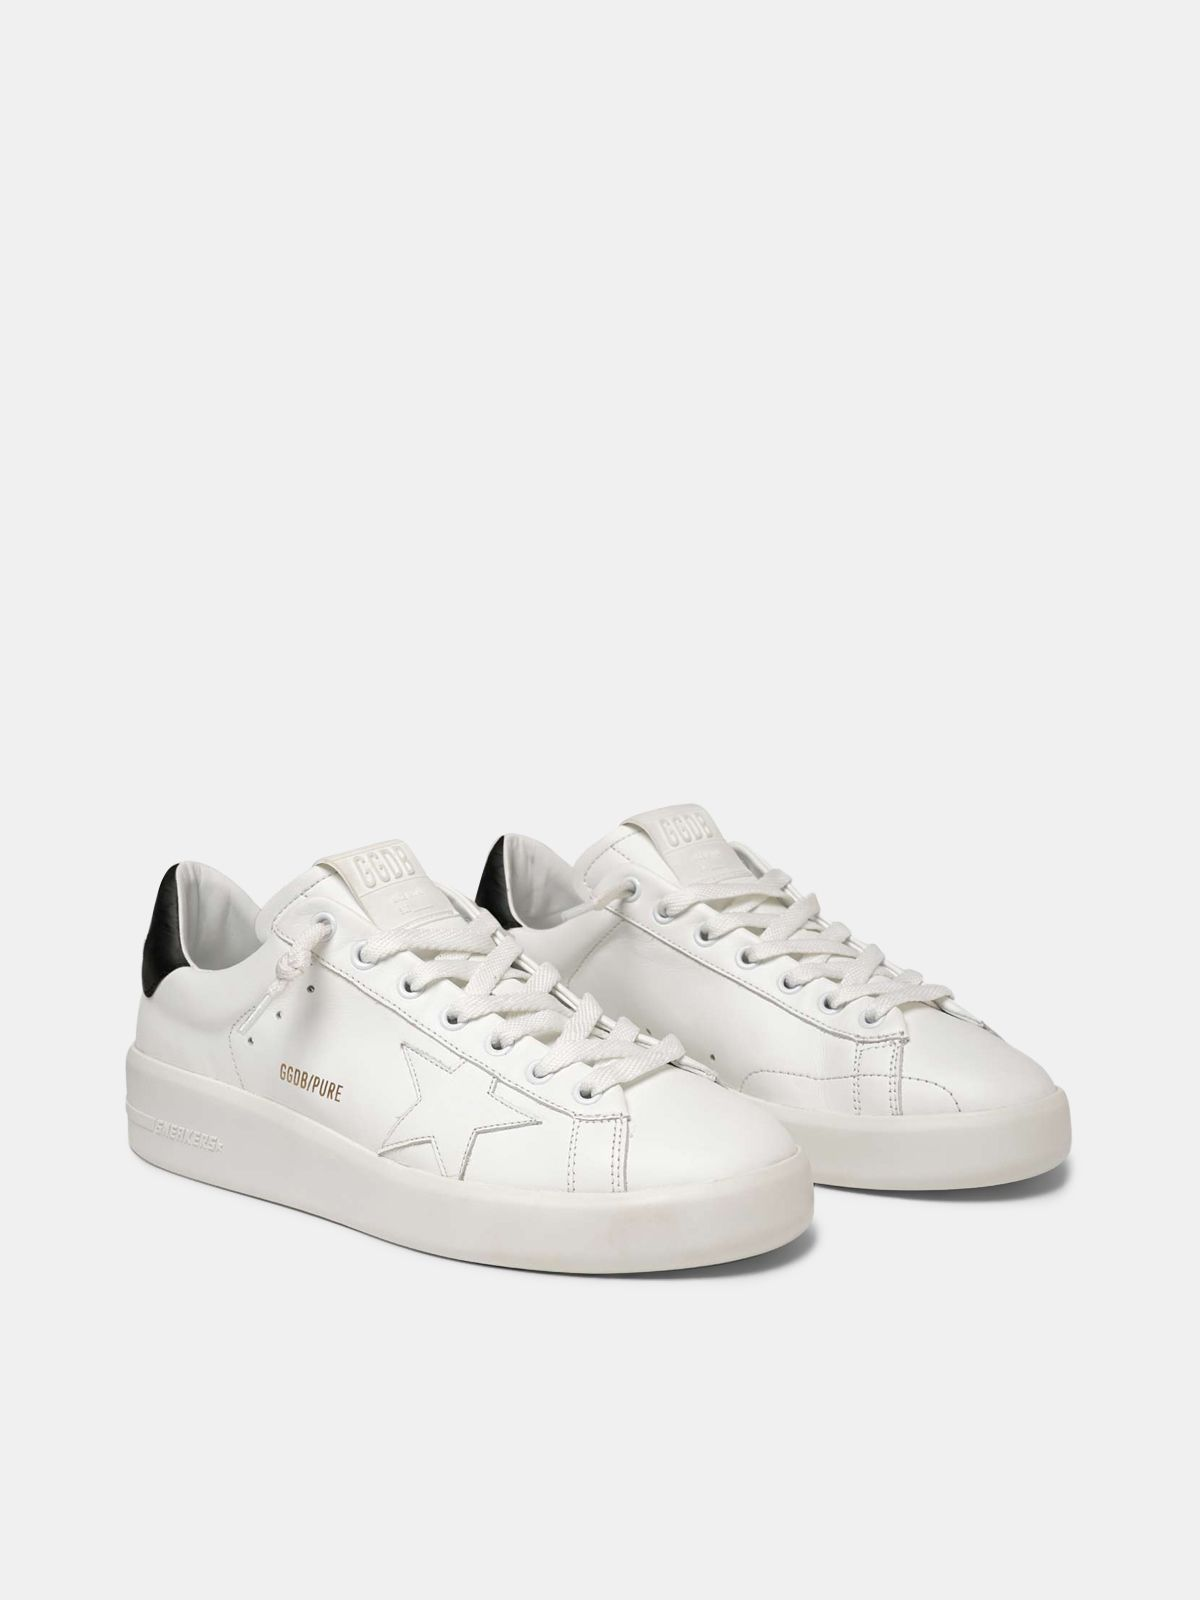 Golden Goose - Sneakers PURESTAR talloncino nero in